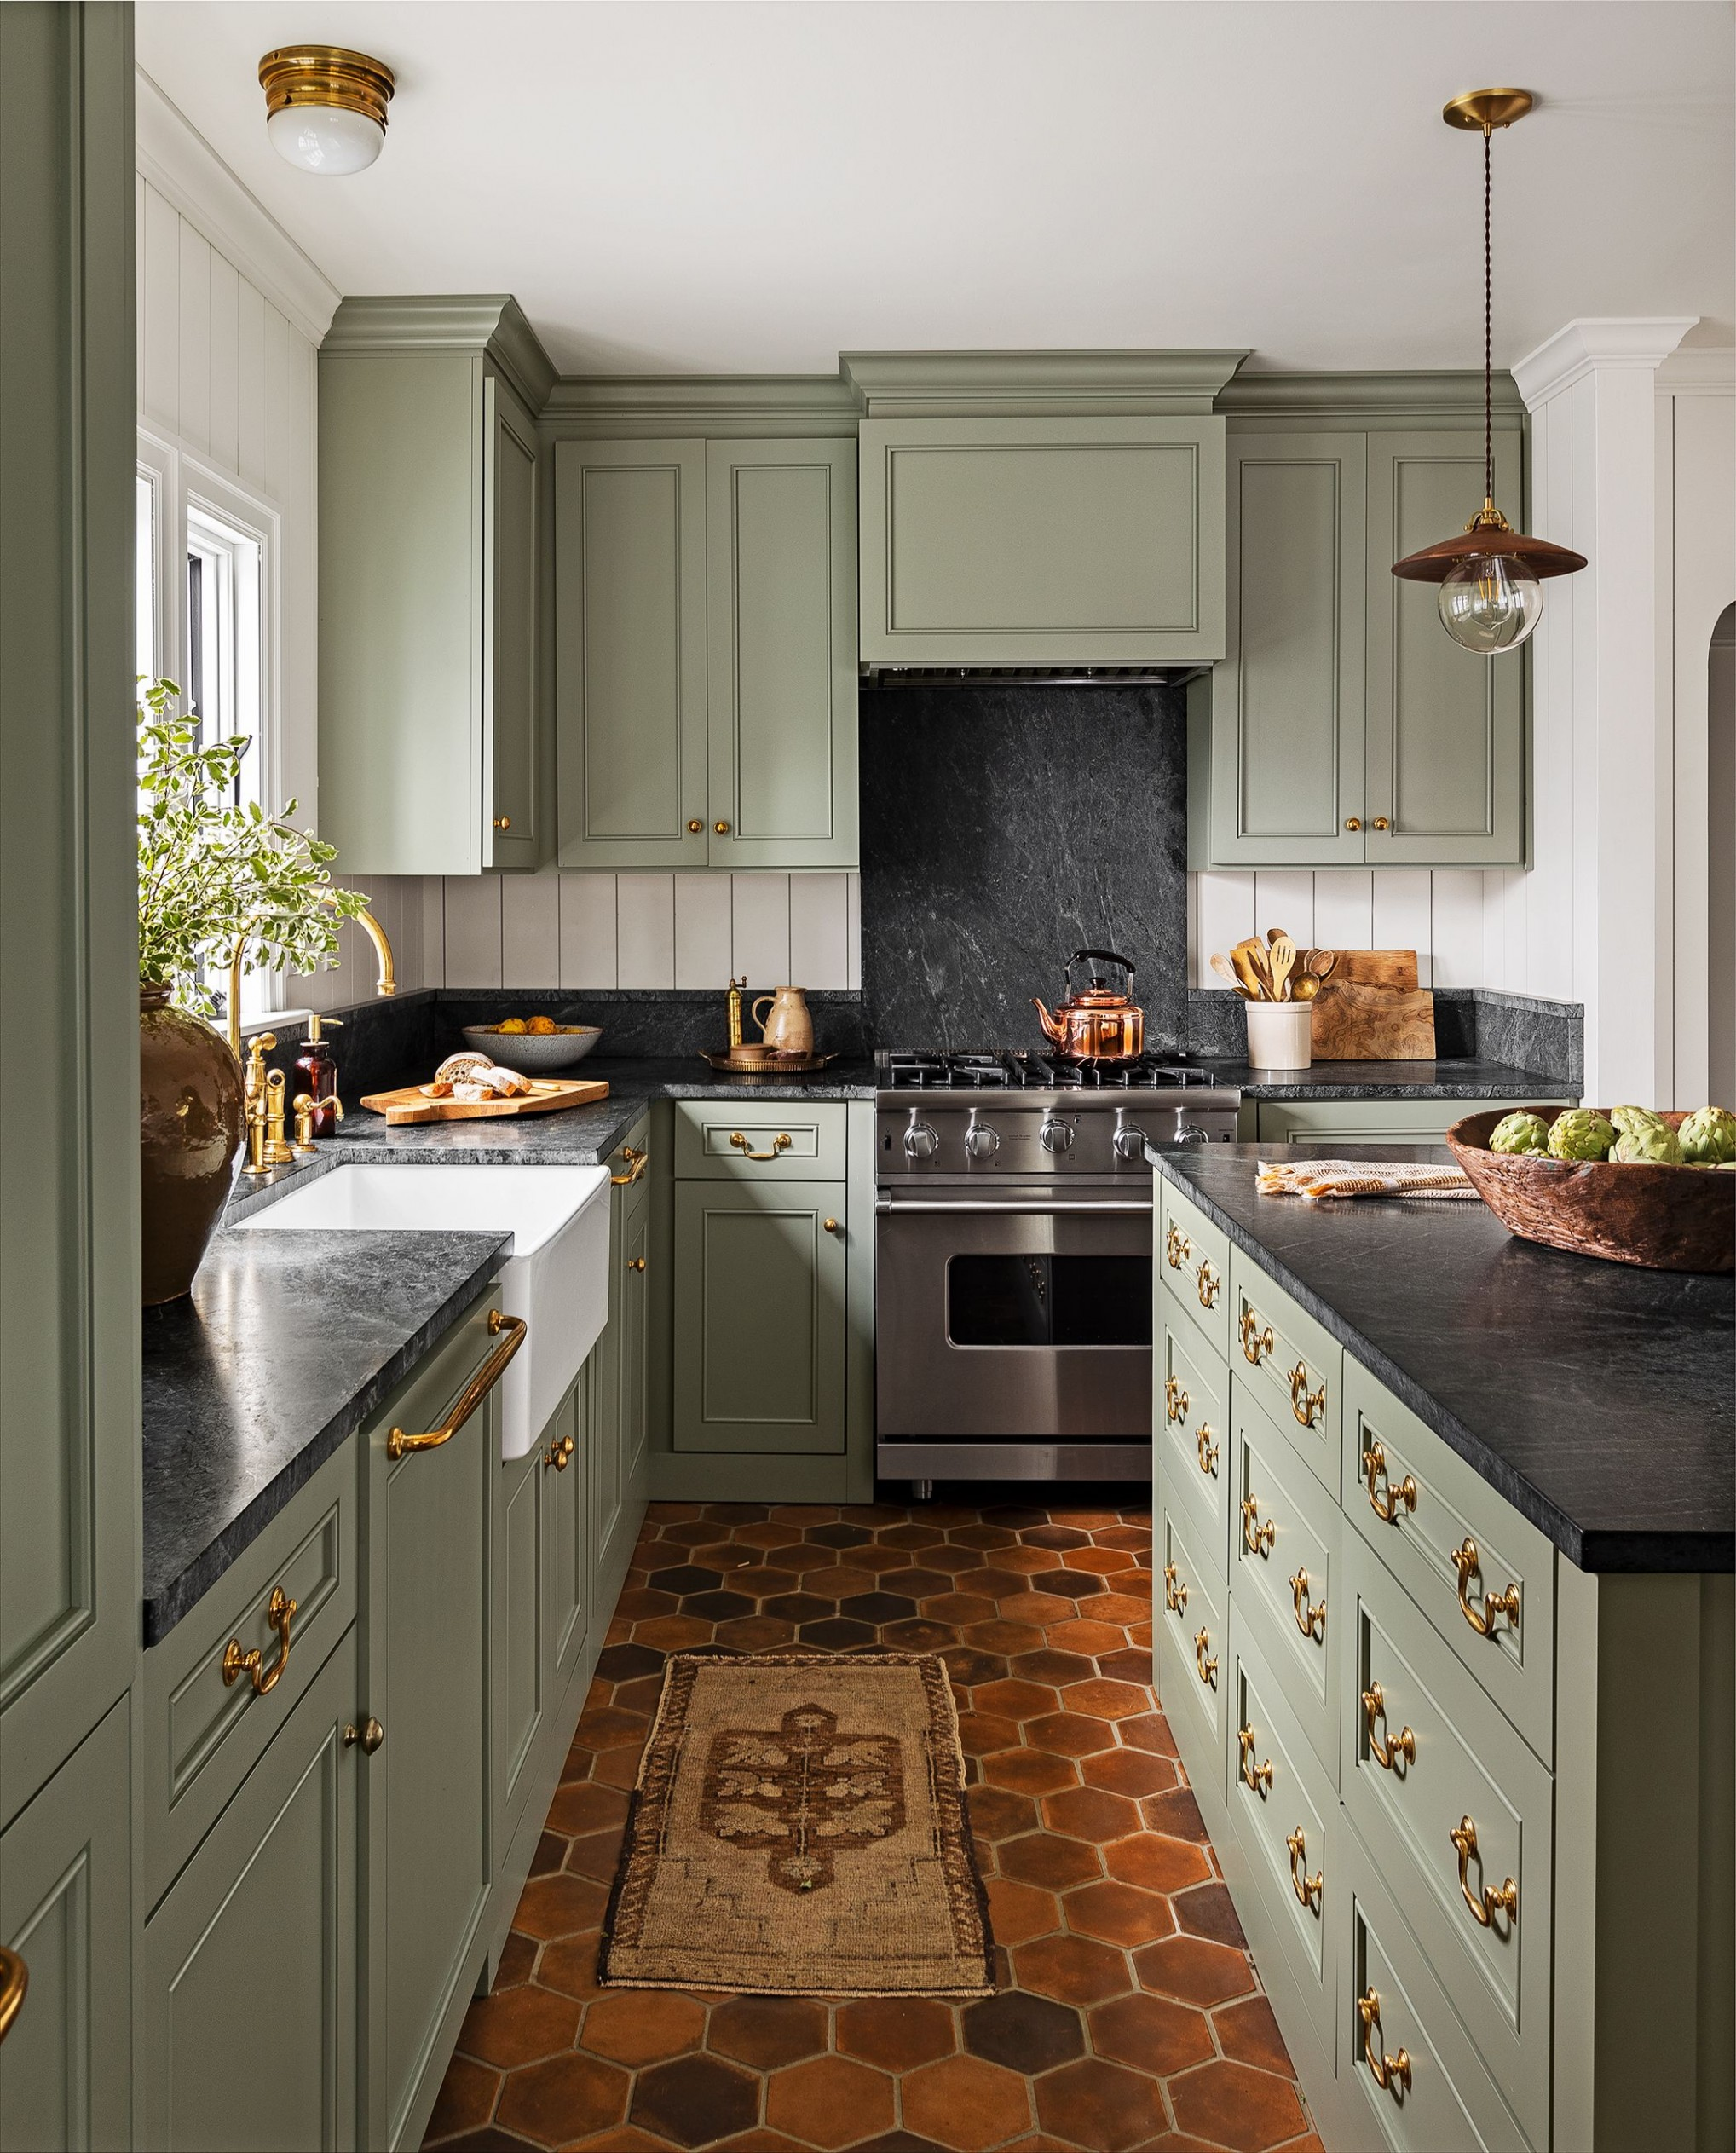 9 Best Green Kitchen Cabinet Ideas - Top Green Paint Colors for  - Go Green Kitchen Cabinets